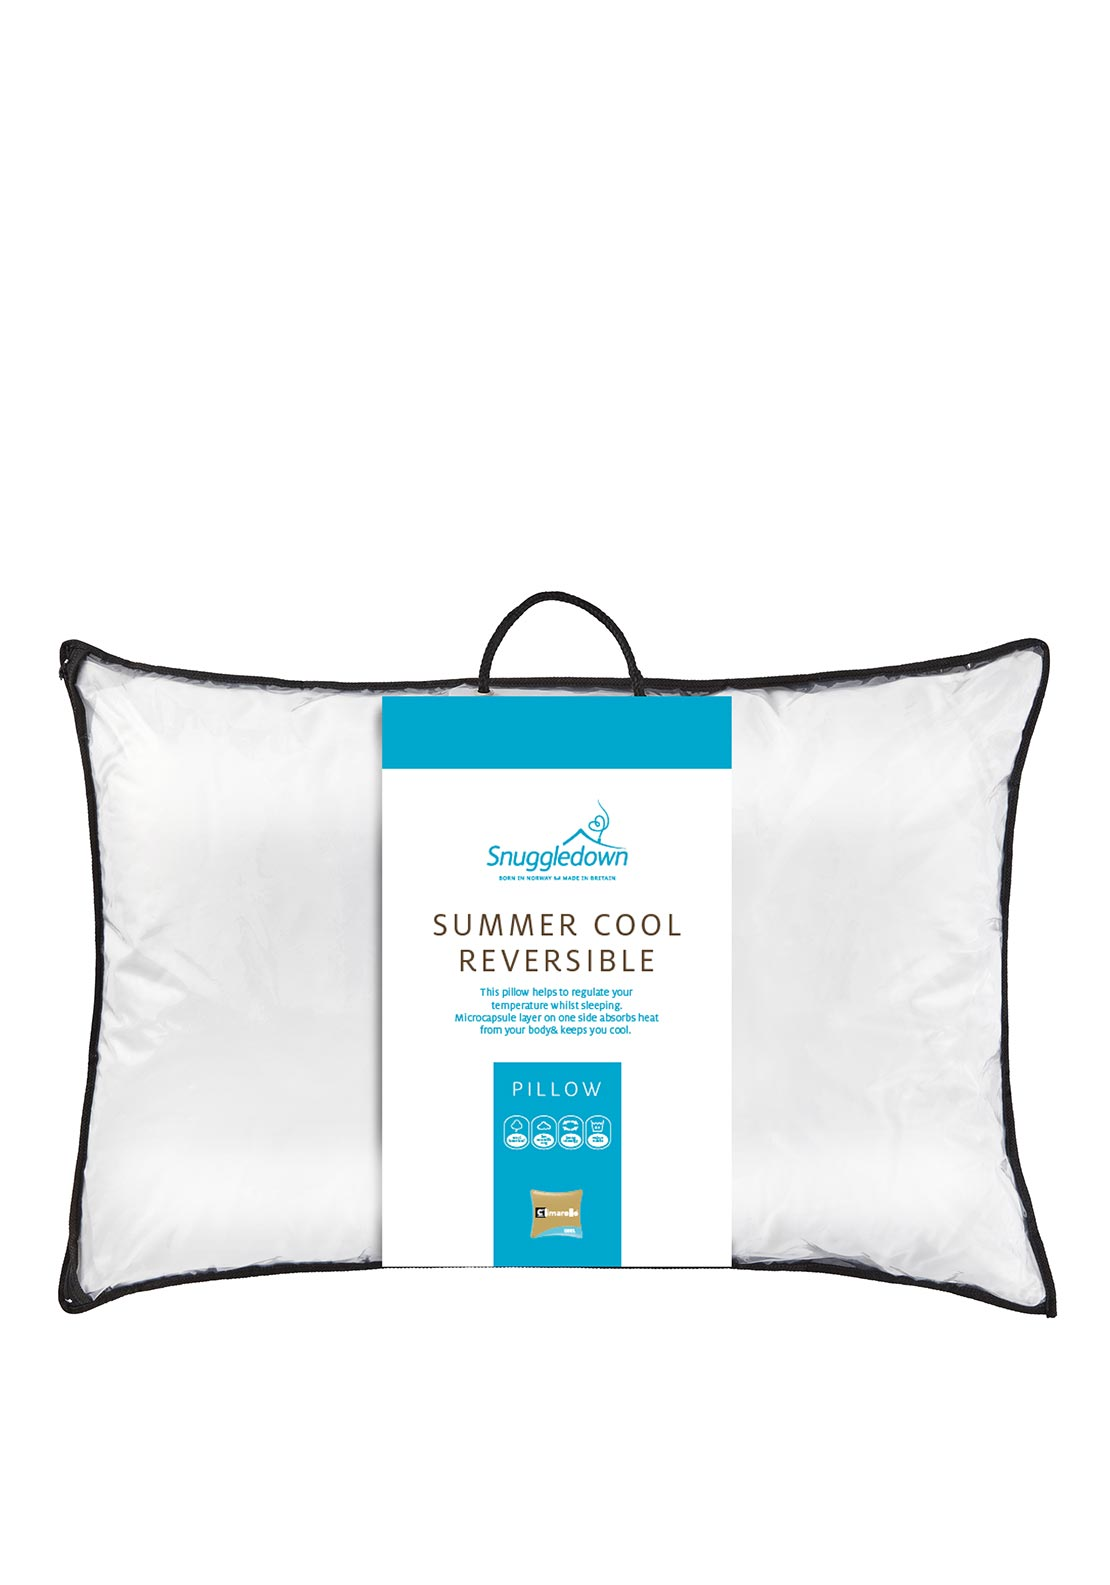 Snuggledown Summer Cool Reversible Pillow